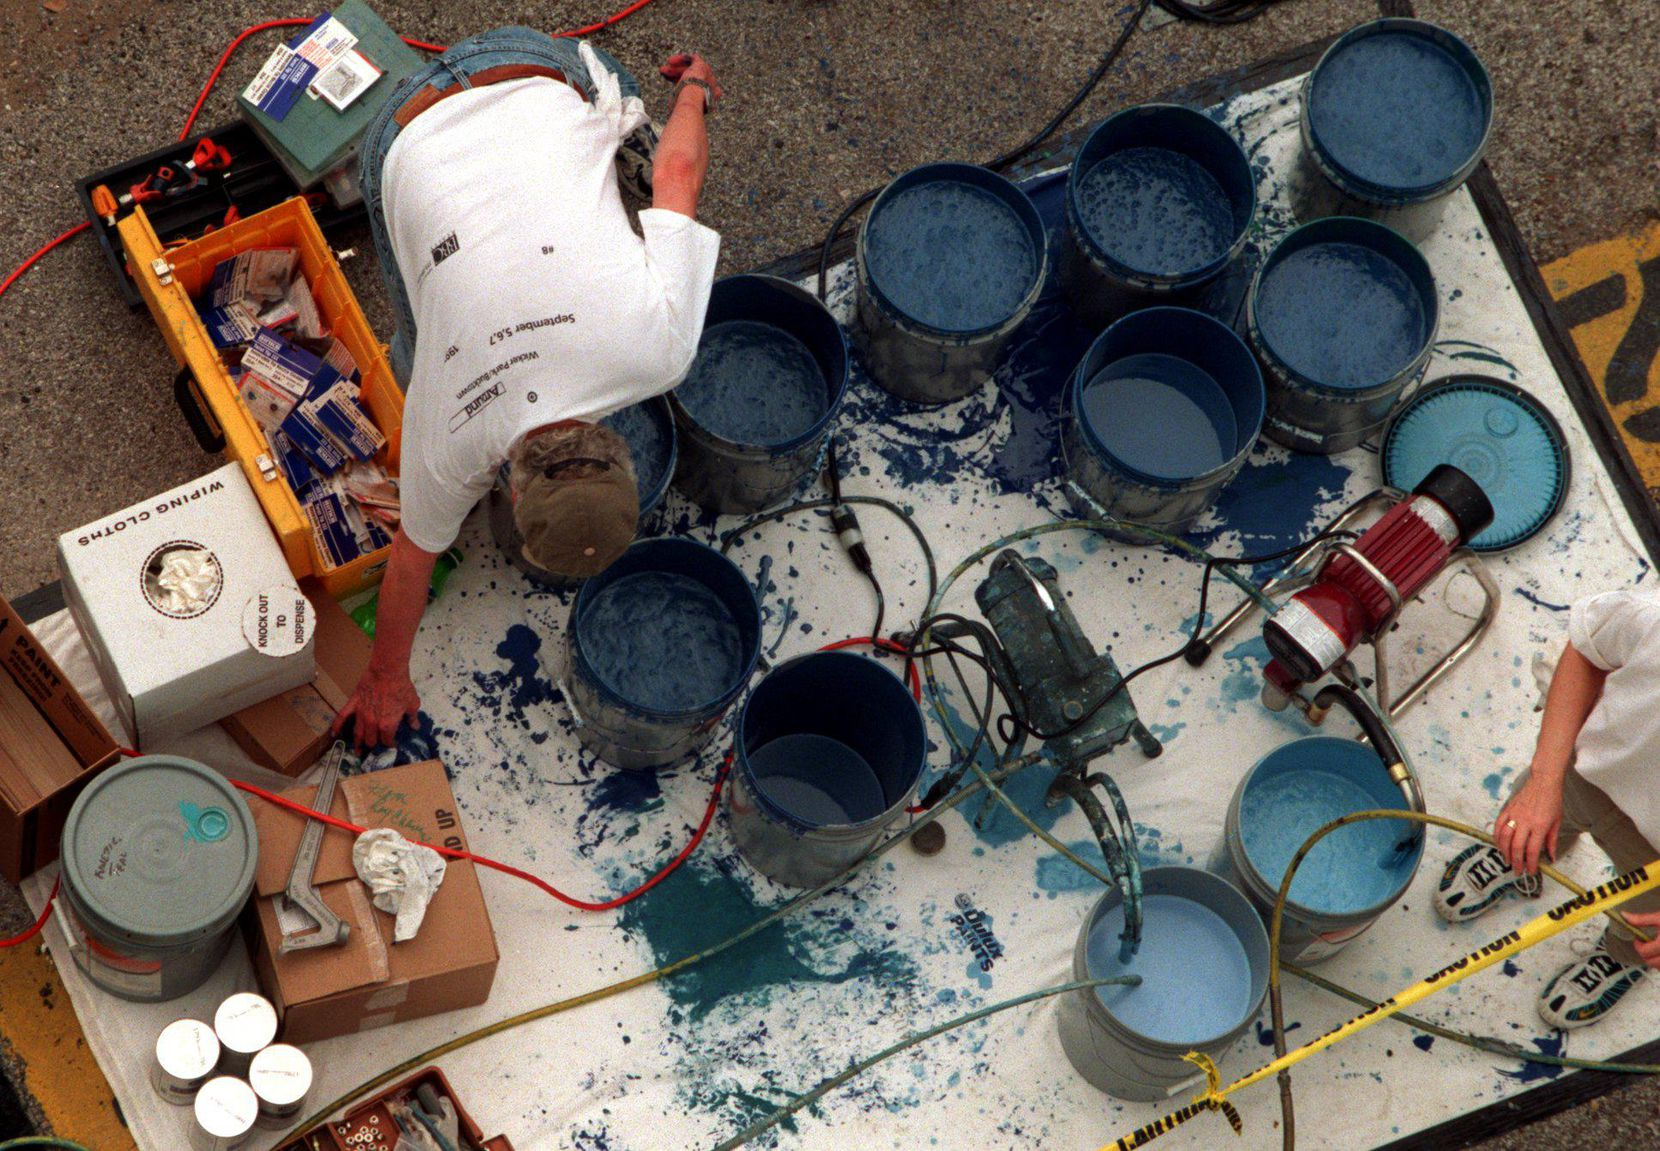 In this 1999 file photo, volunteers keep the paint pumping for Wyland the artist as he works on his whale mural that graces 505 N. Akard St.